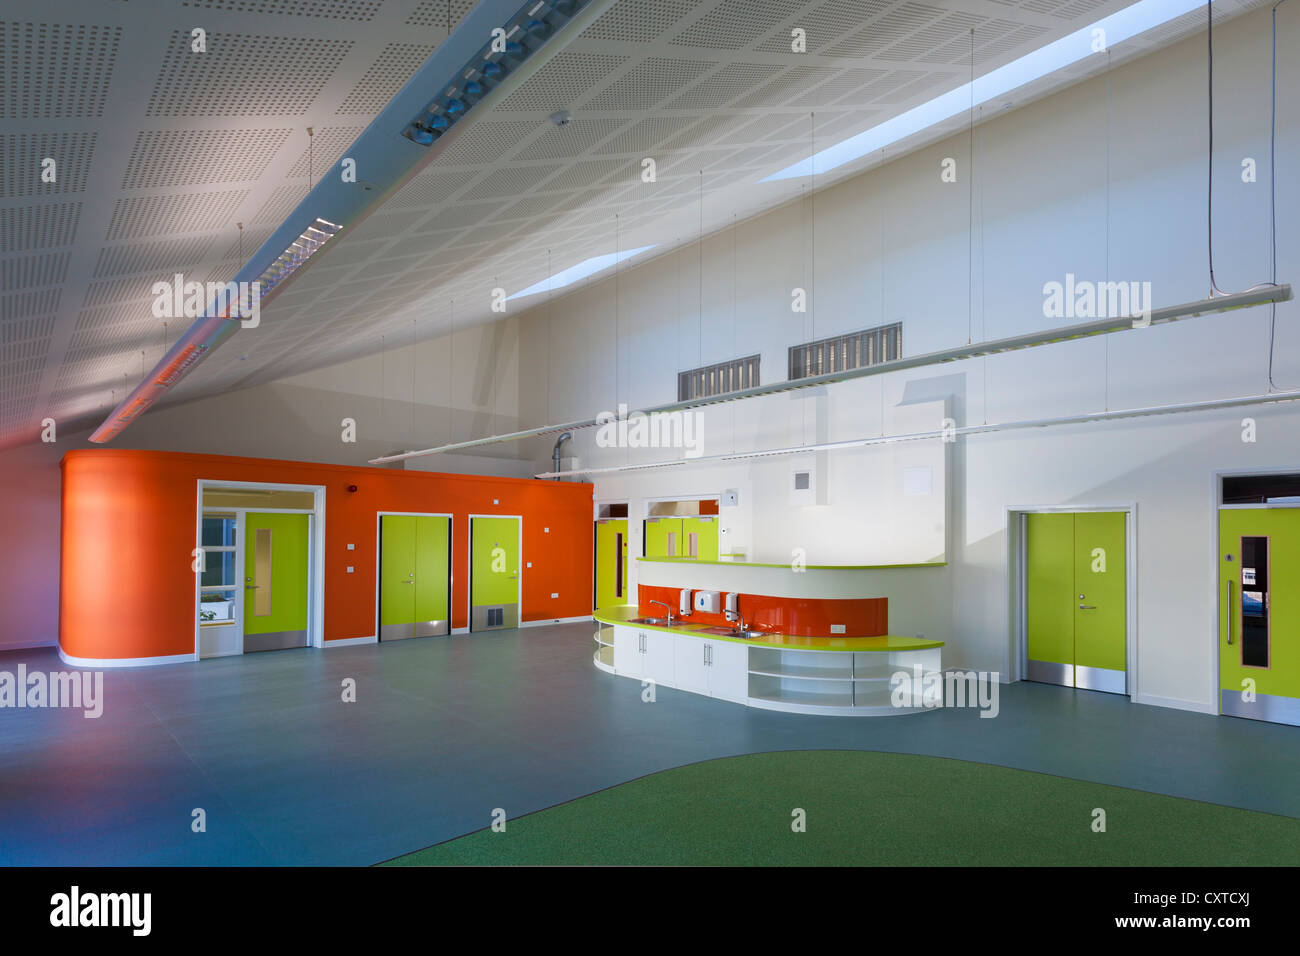 Colourful primary school classroom unoccupied. - Stock Image